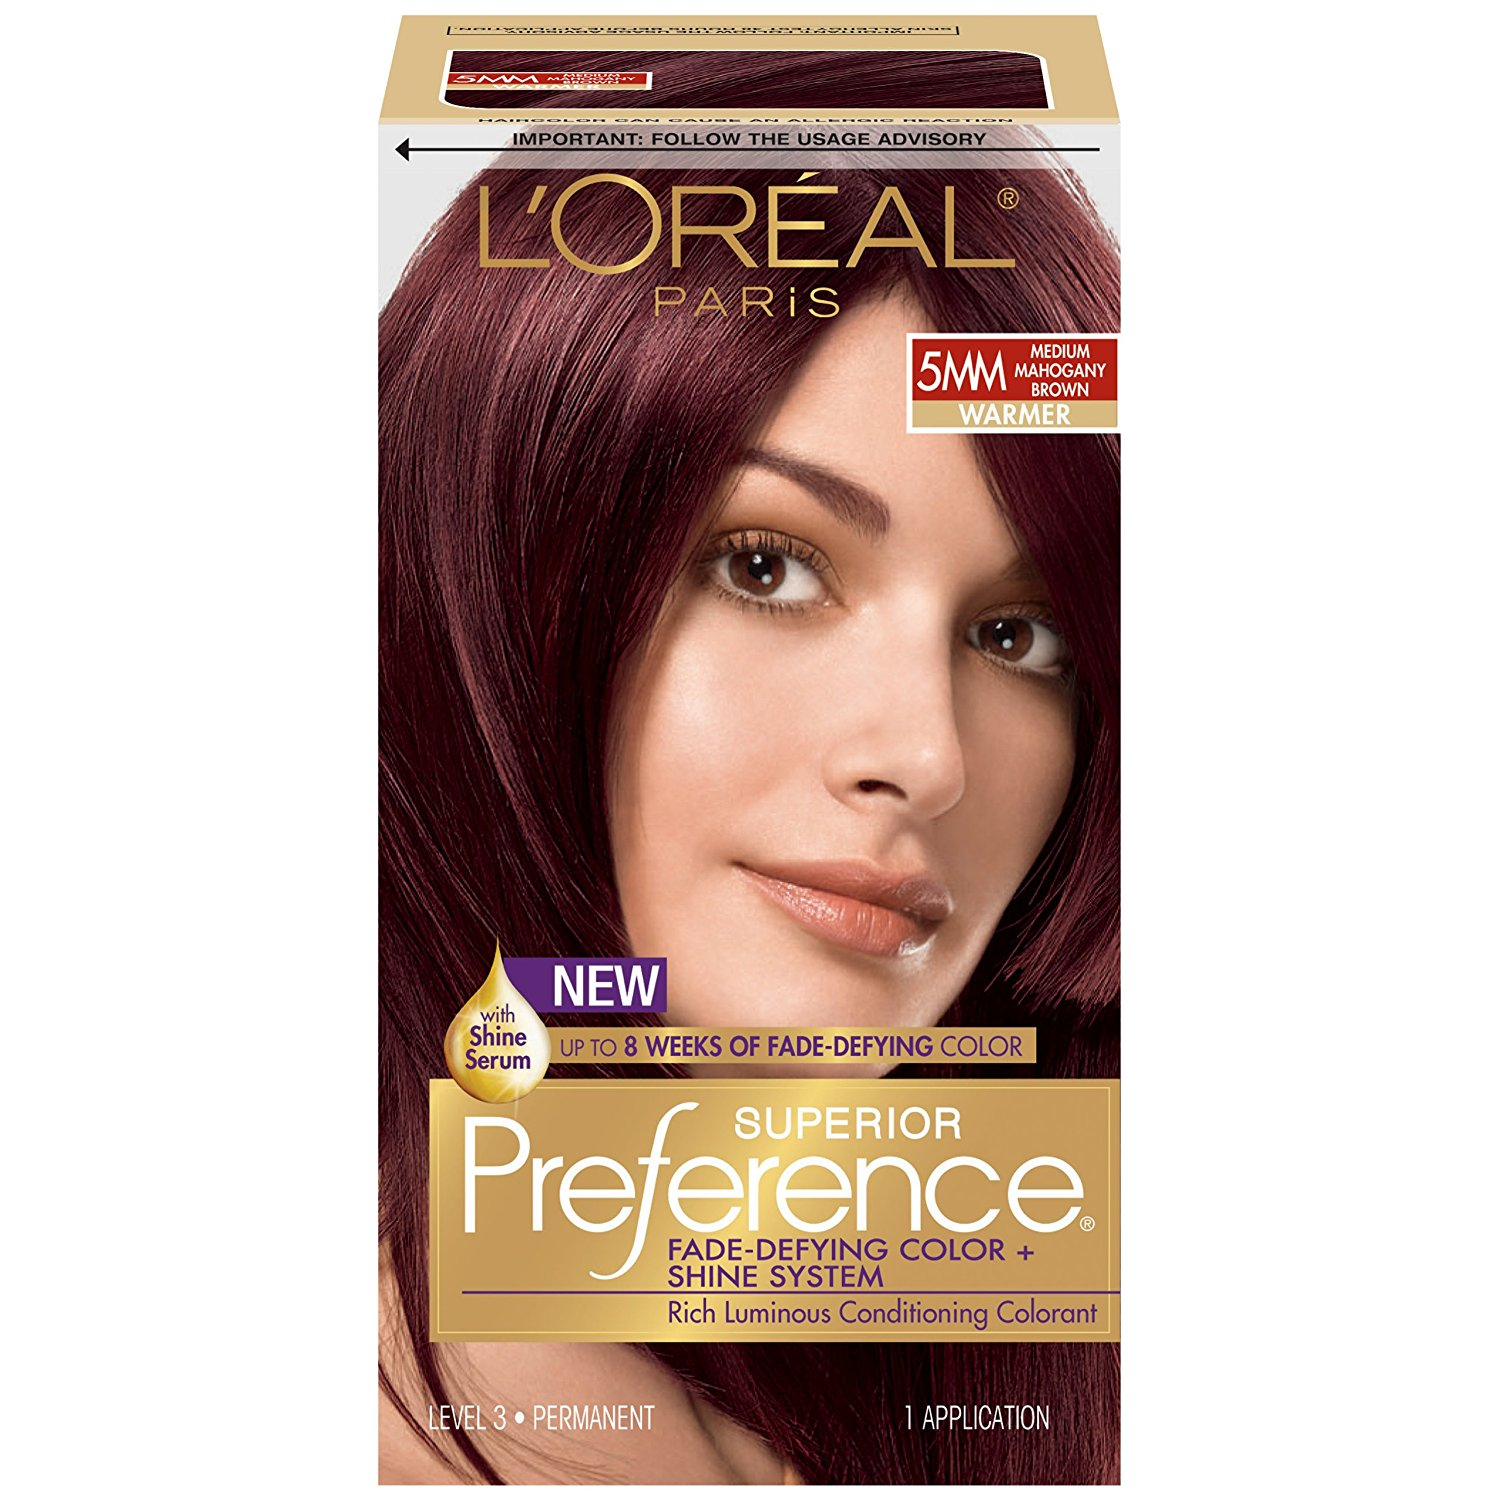 Loreal Paris Superior Preference Hair Color 5mm Medium Mahogany